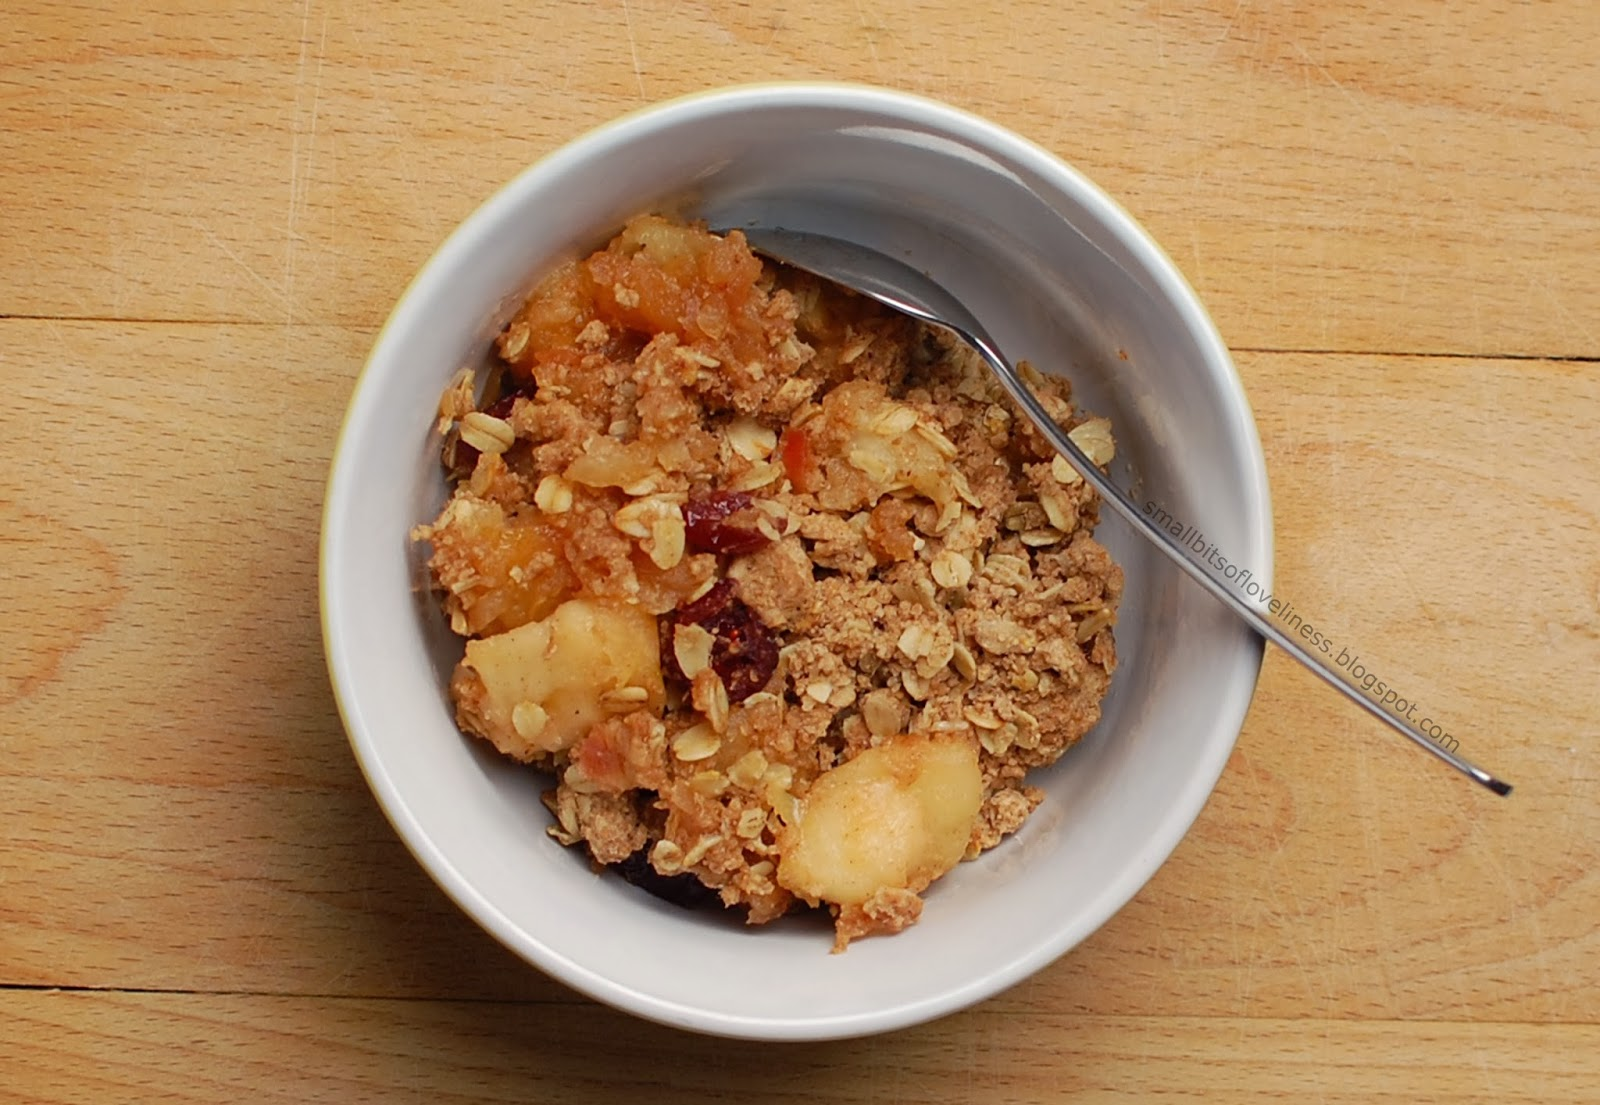 Apple Crnaberry Crumble